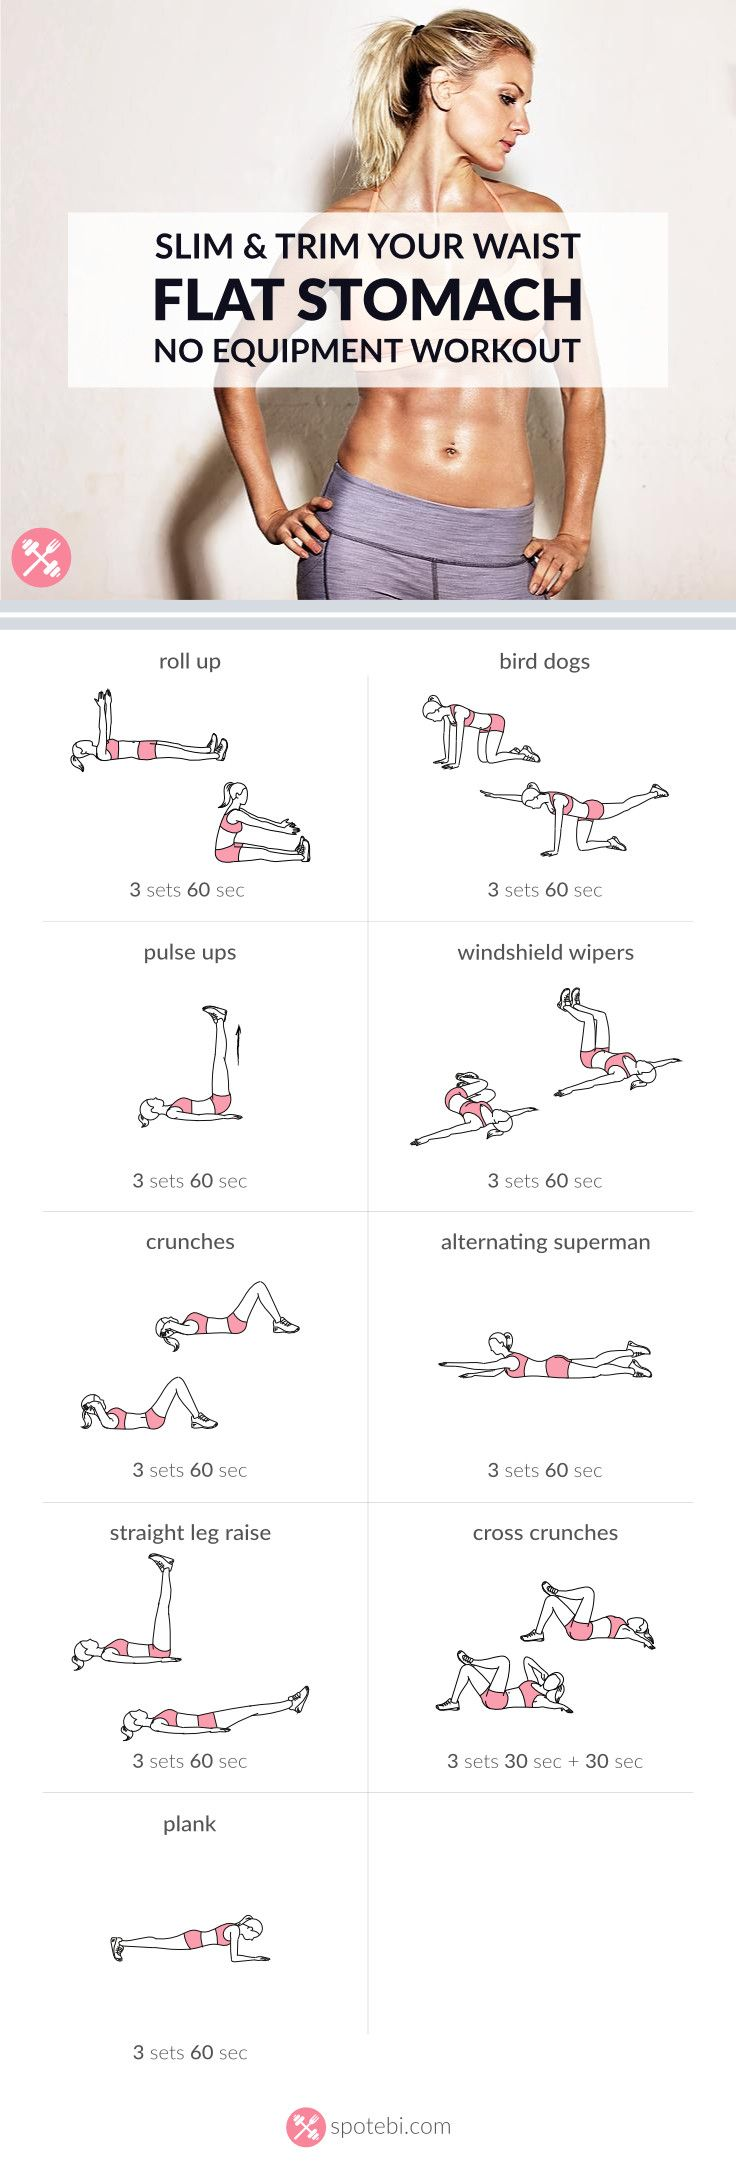 Flat Stomach ab workout with no equipment. Each execise 60 sec & 60 sec rest, 3x, total 30 min